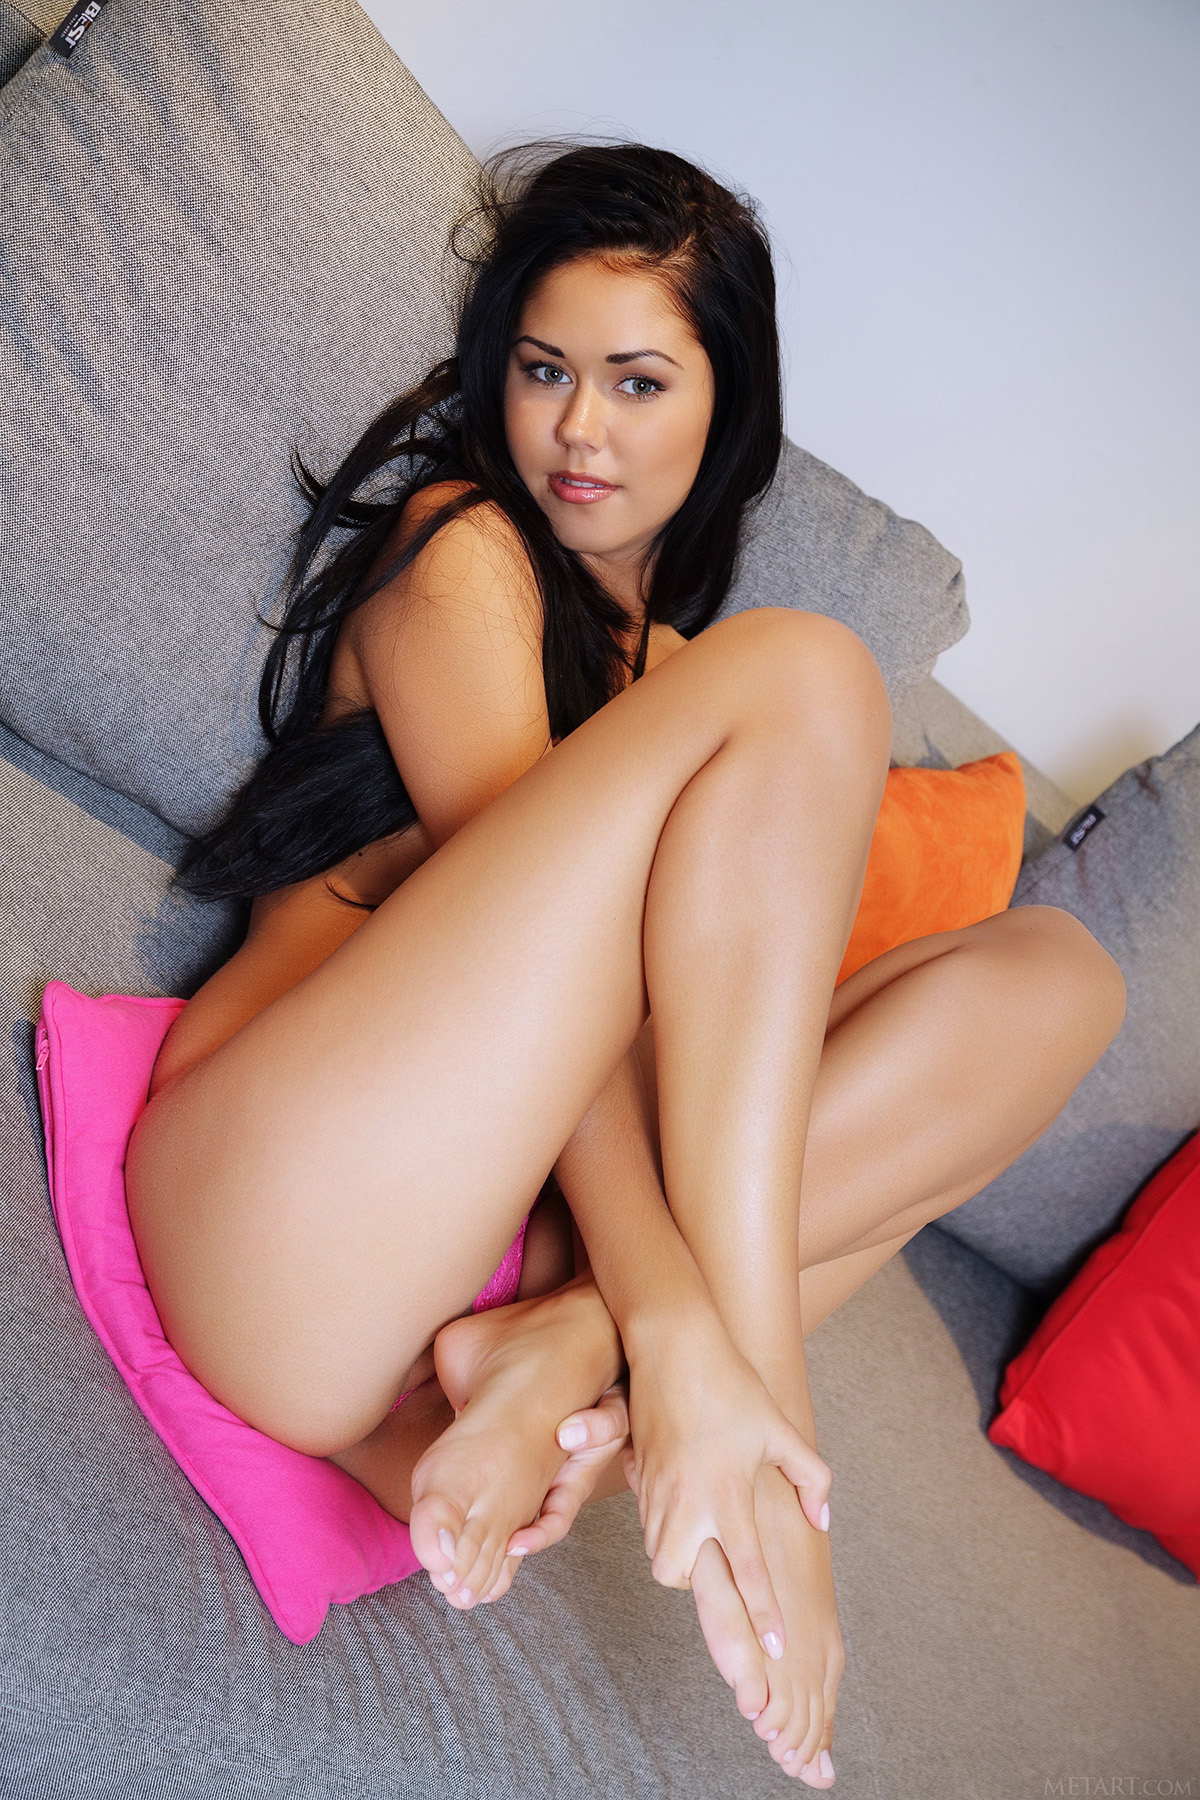 Lovely Little Macy B Exposing Her Beautiful Body and Showing Her Perfect Pink Pussy via Met-Art - 08